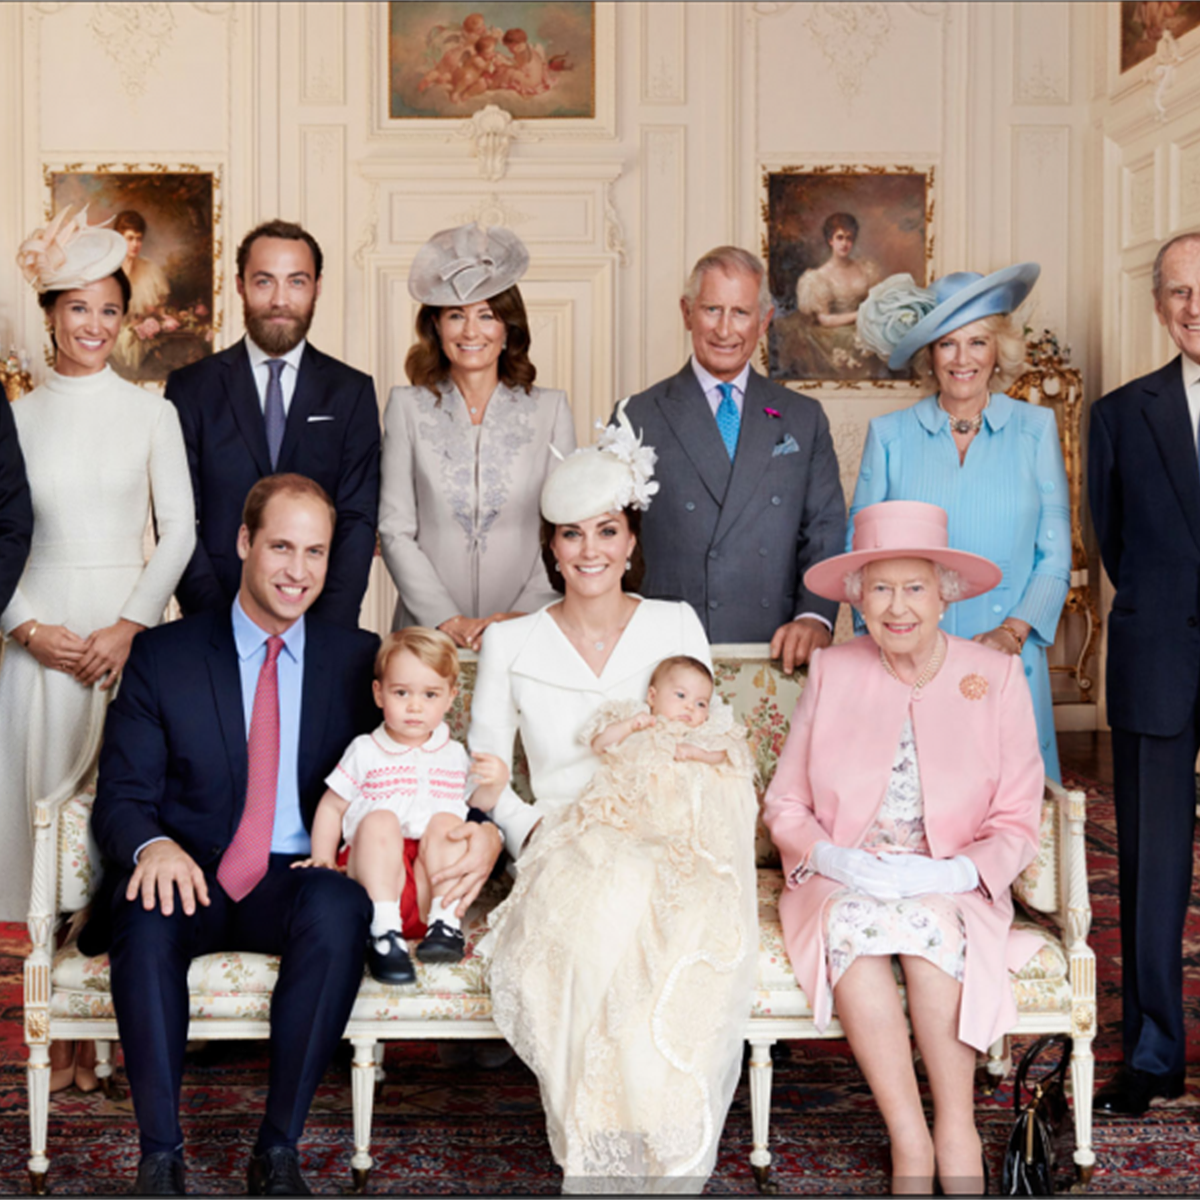 bb3ed6d42f Royal Family expresses concerns over alarming measures used by paparazzi  seeking photos of Prince George